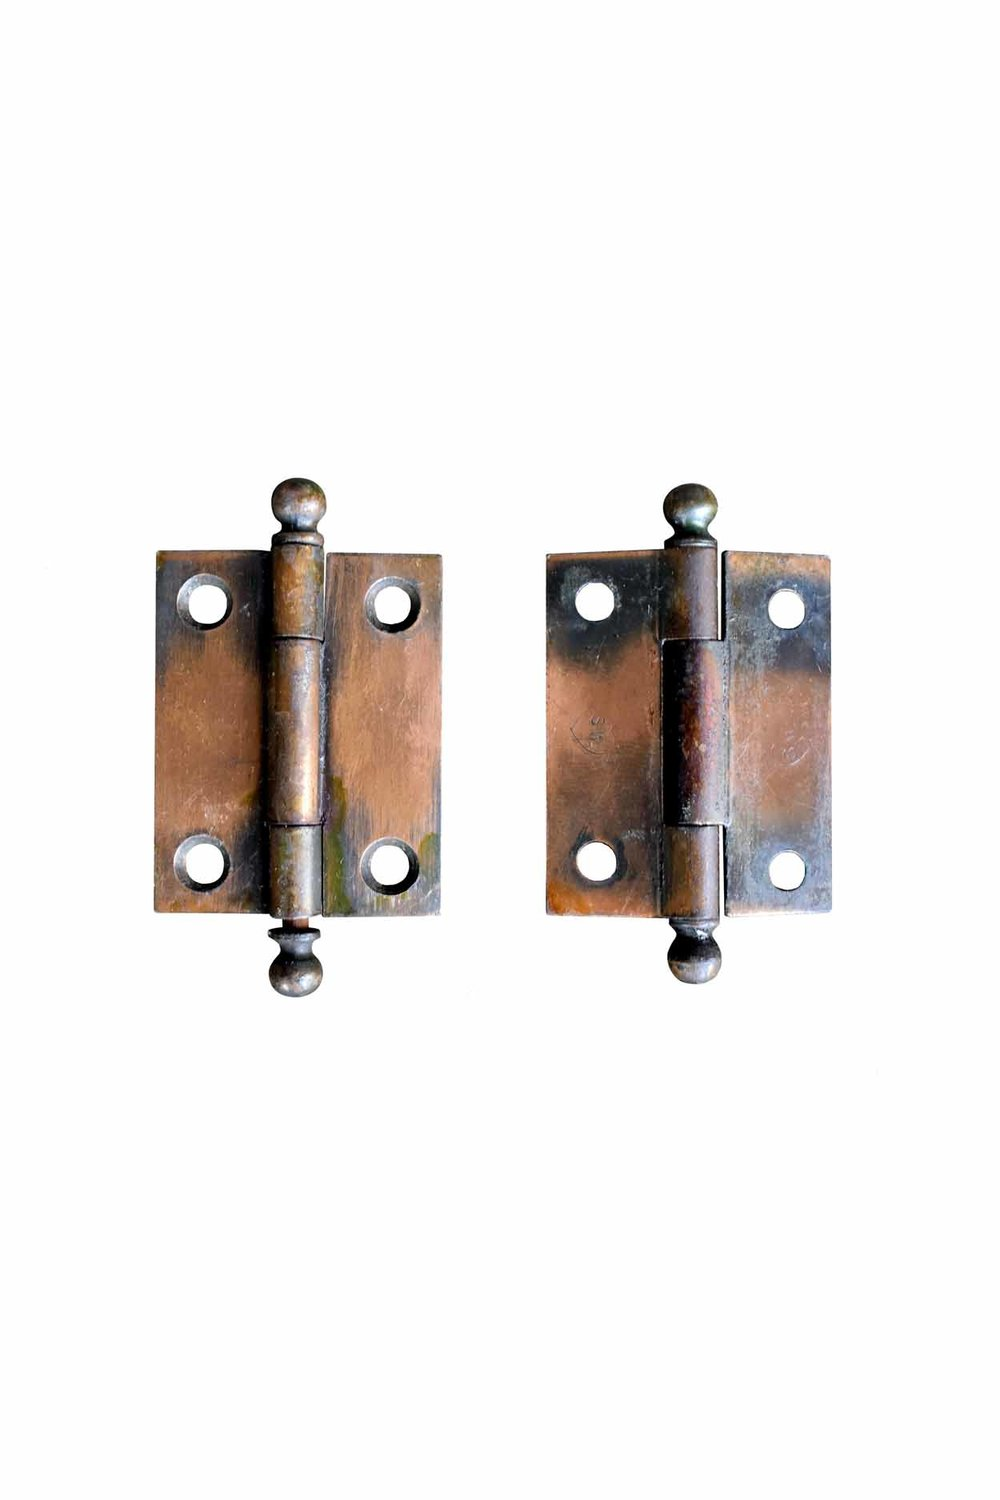 """GILT AND SATIN 1.5"""" X 2"""" CABINET HINGES AA# H20141   26 available in 2 varieties from $22.00 each"""